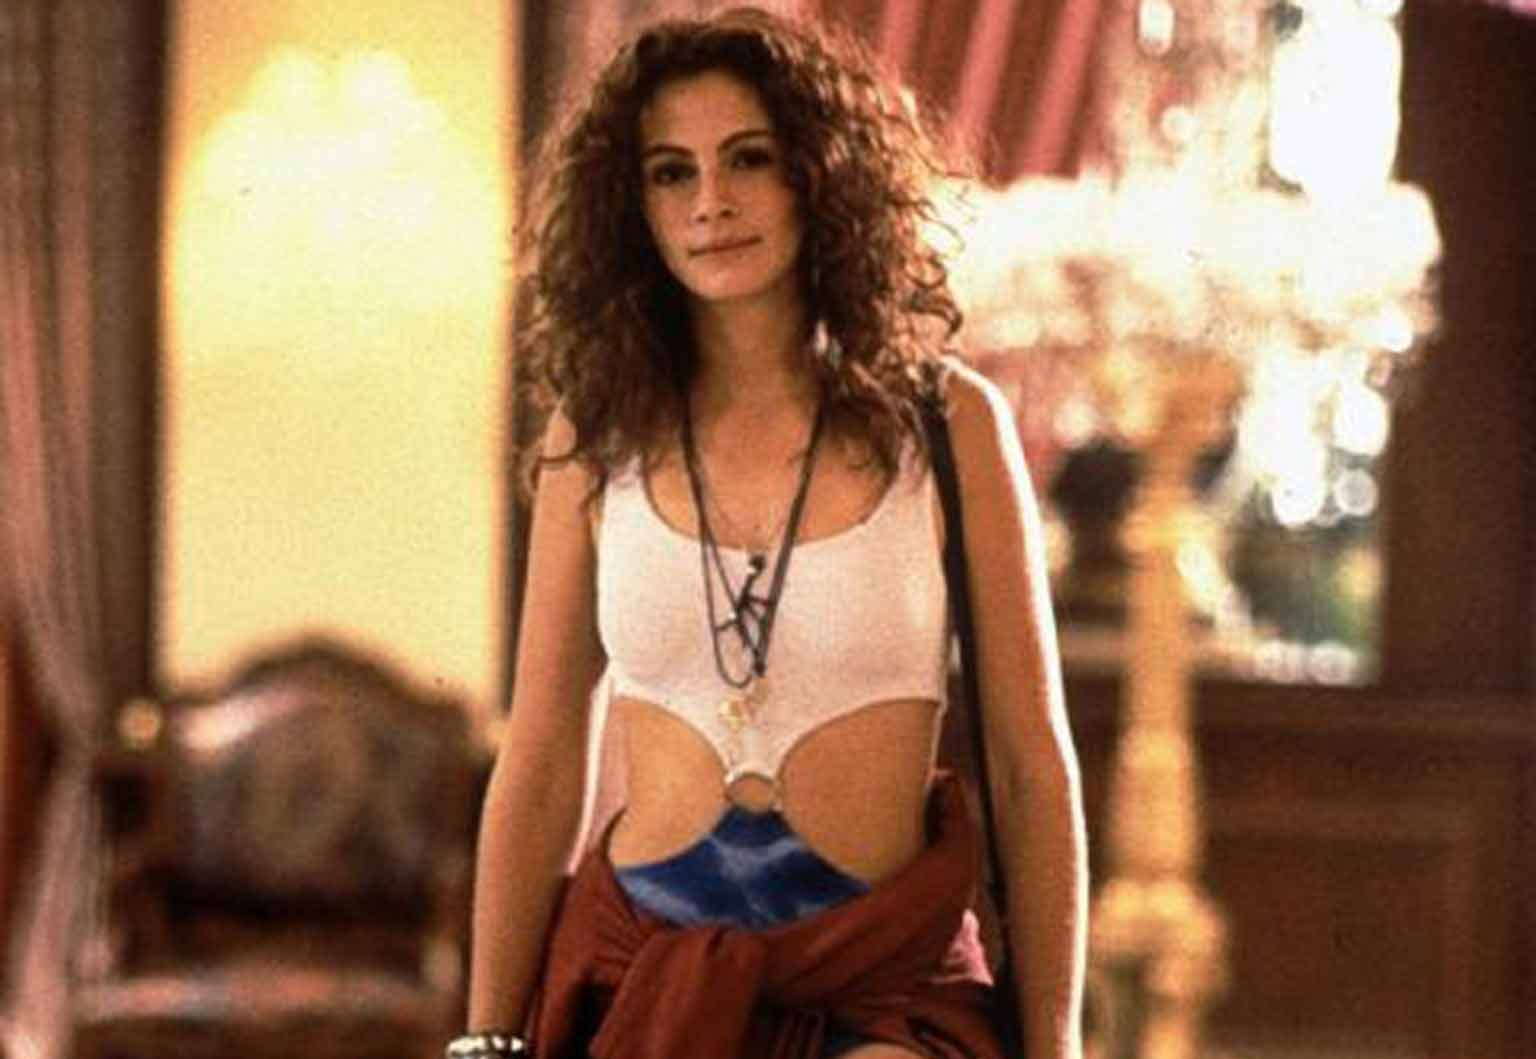 pretty woman ap e1617792261949 20 Classic Movies That Could Have Turned Out Very Different